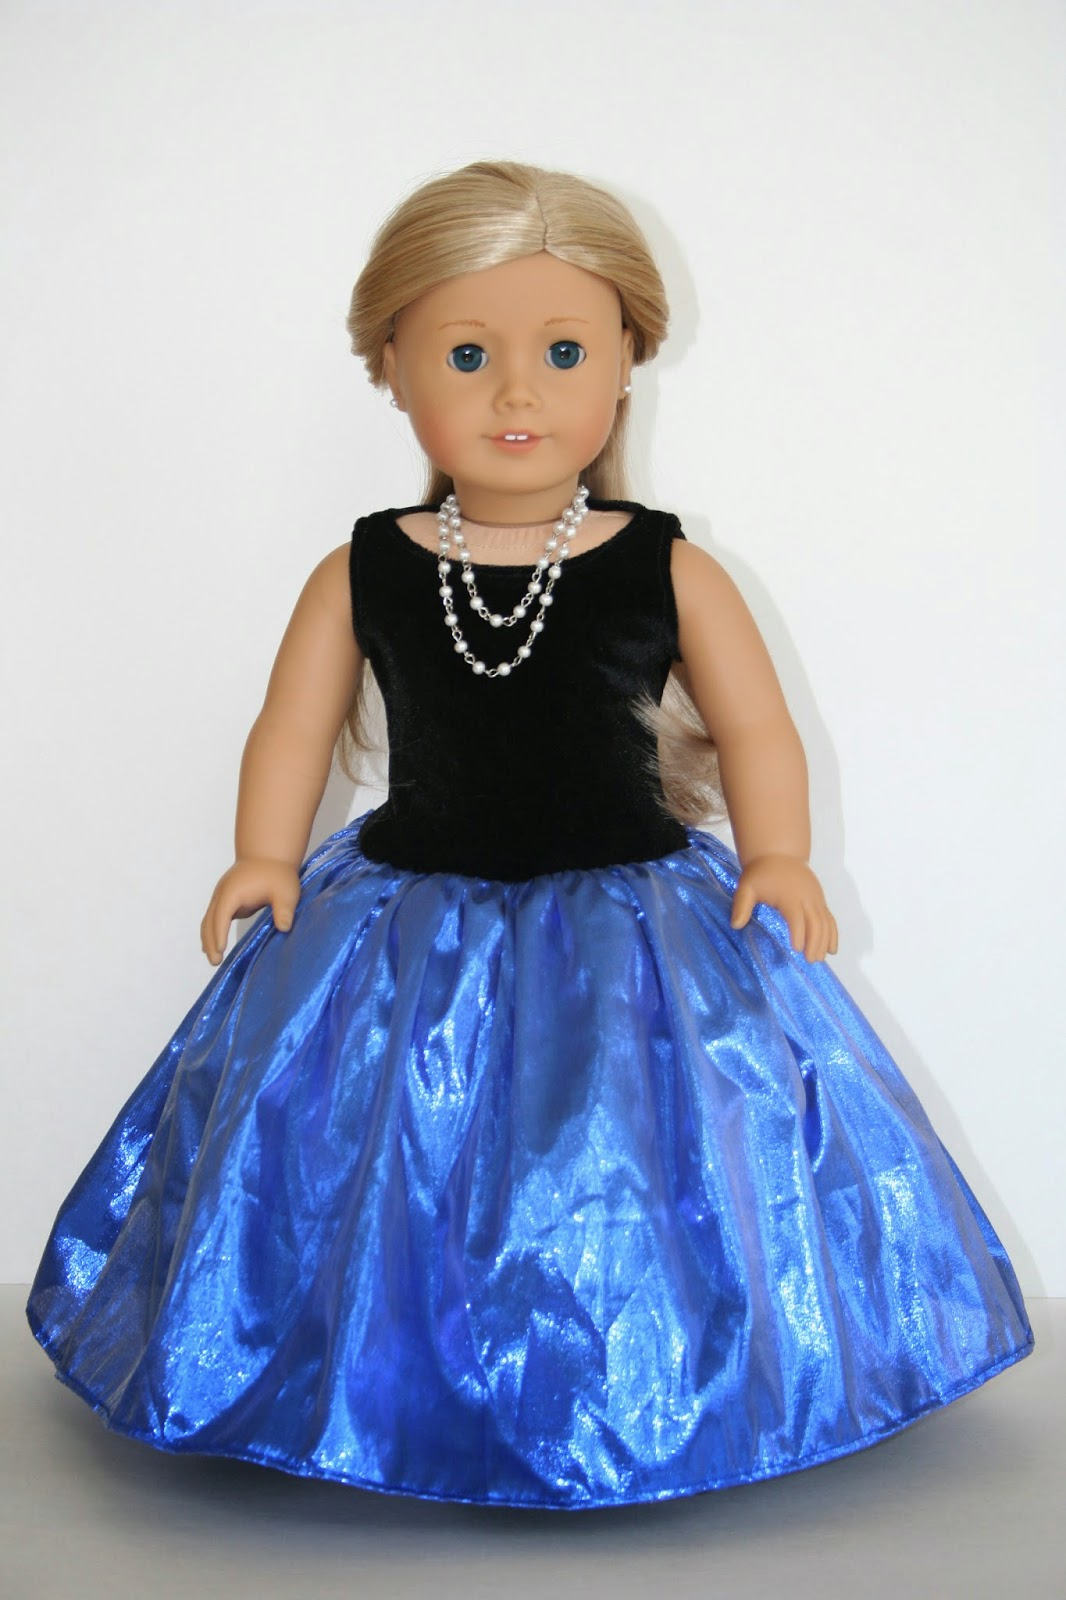 Arts And Crafts For Your American Girl Doll: Fancy Dress